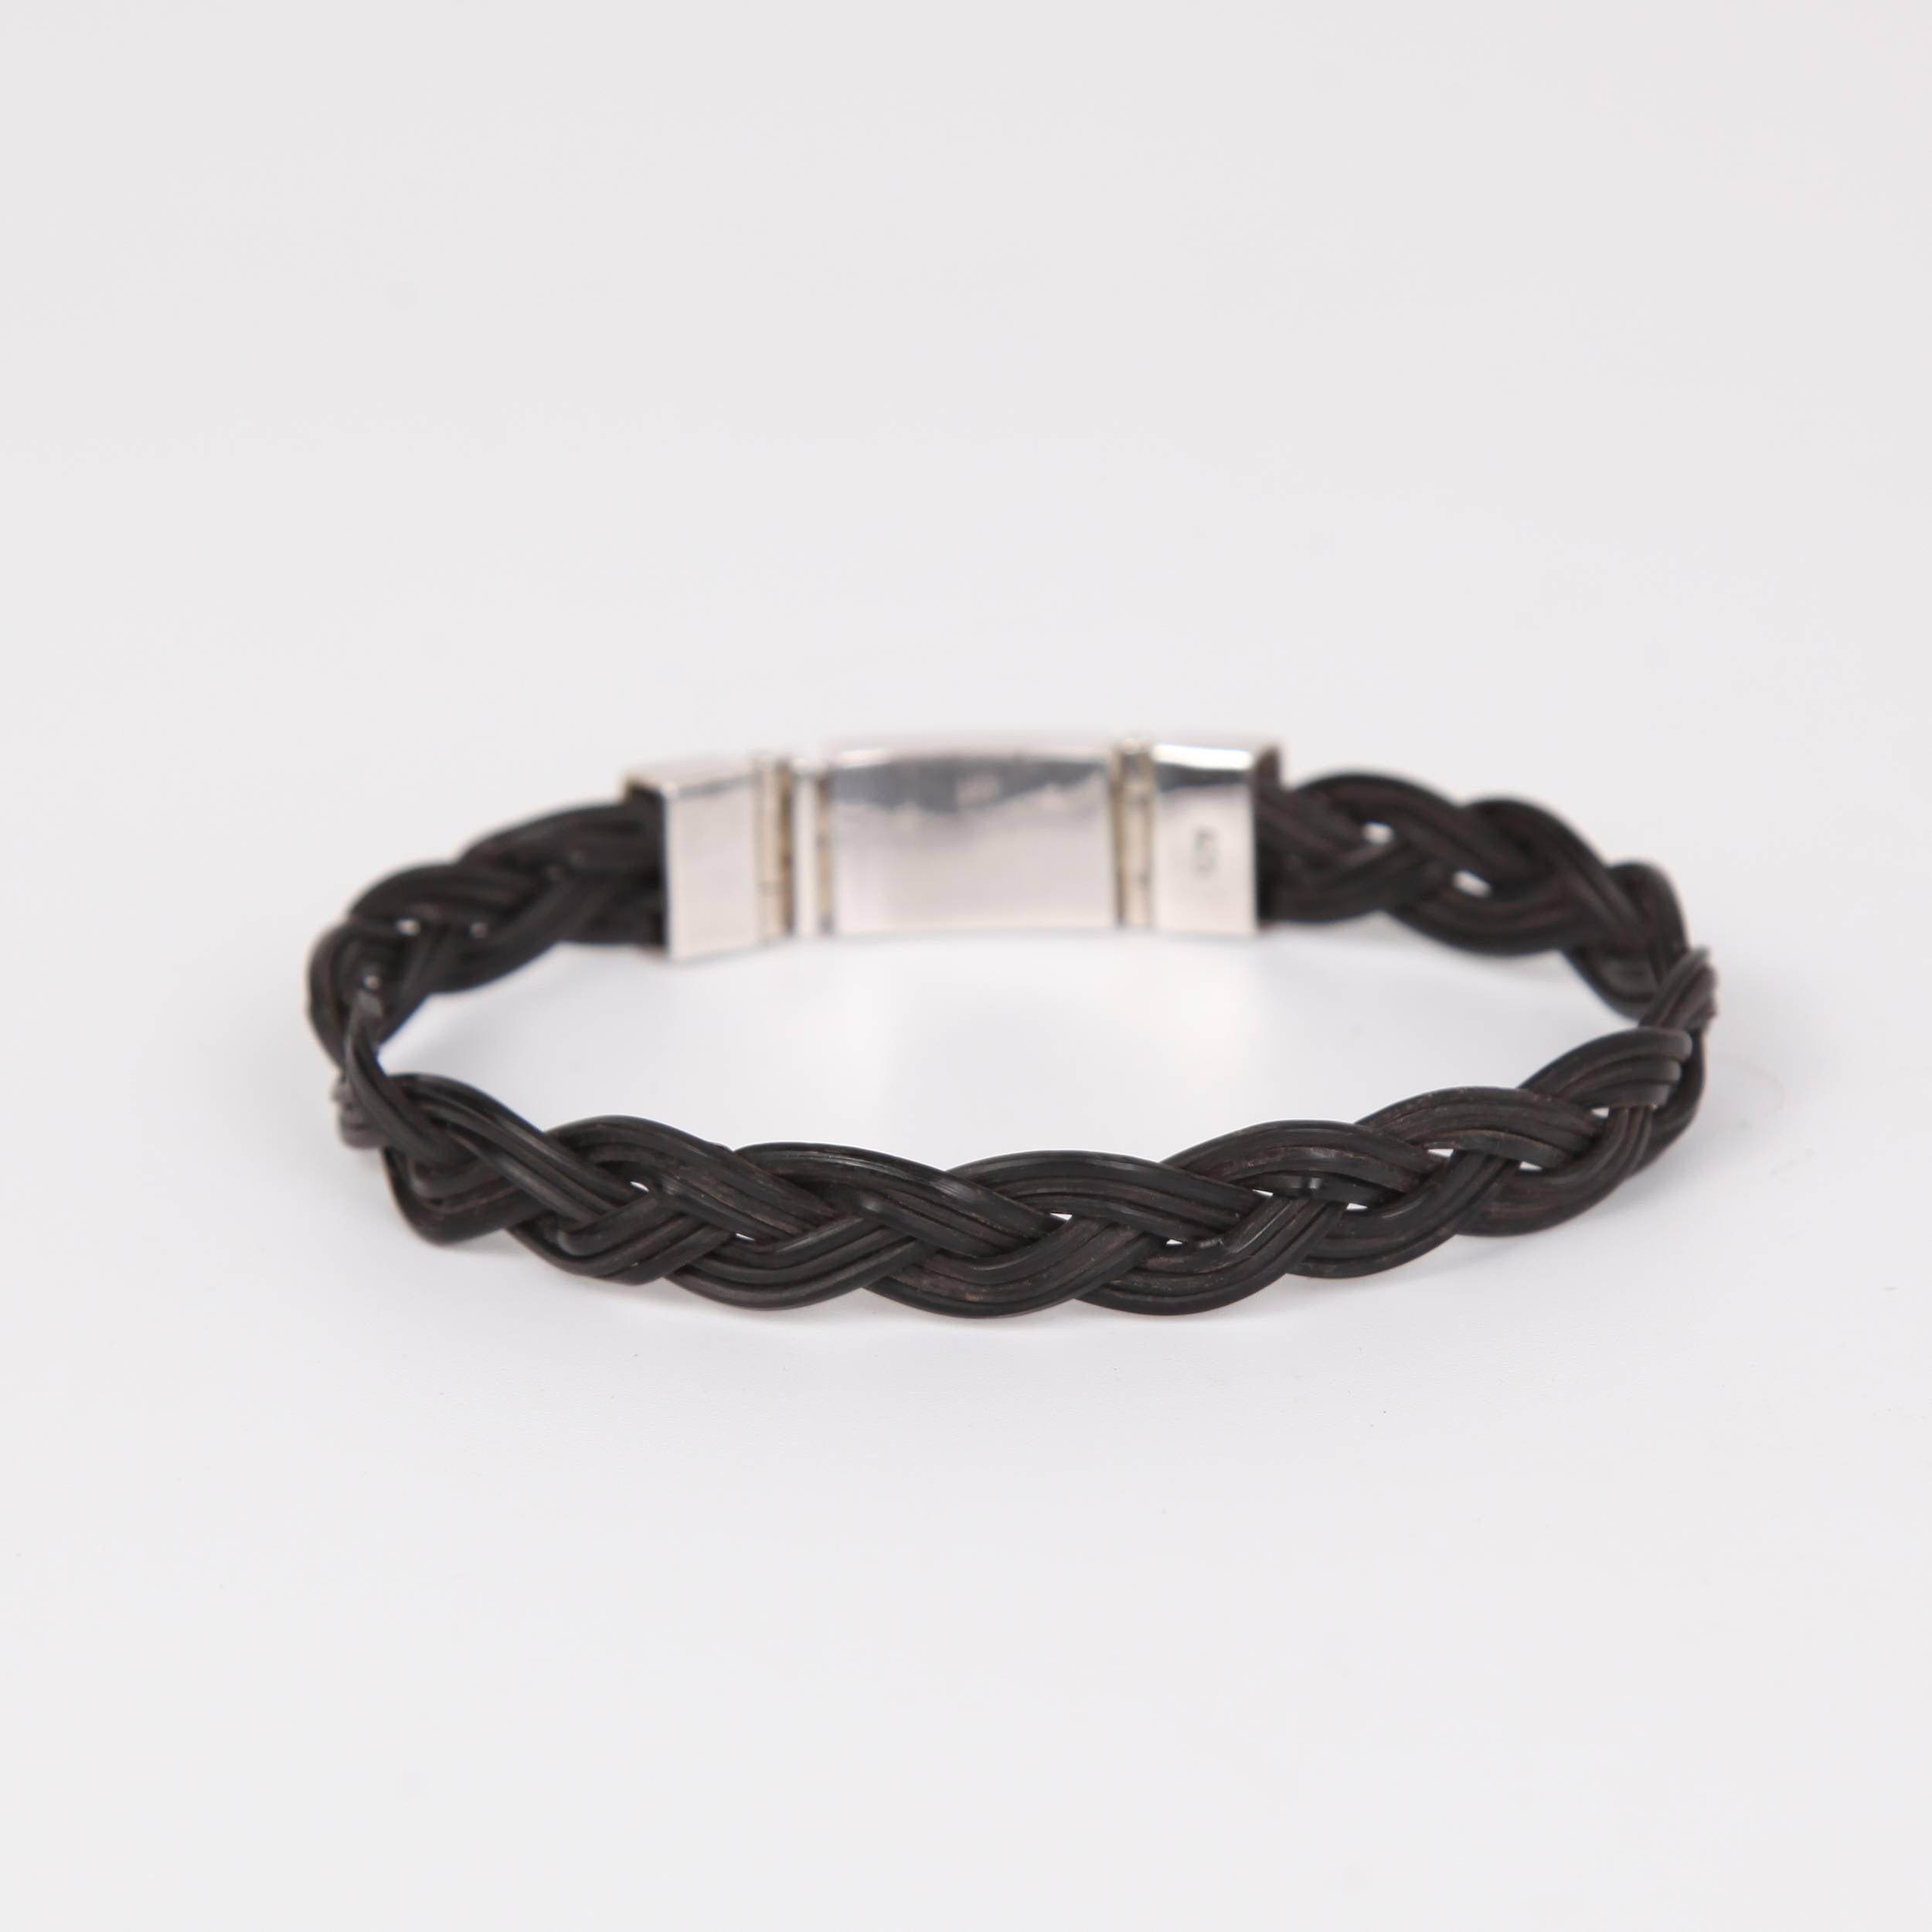 Elephant Hair Bracelet with Sterling Silver Thin Braid